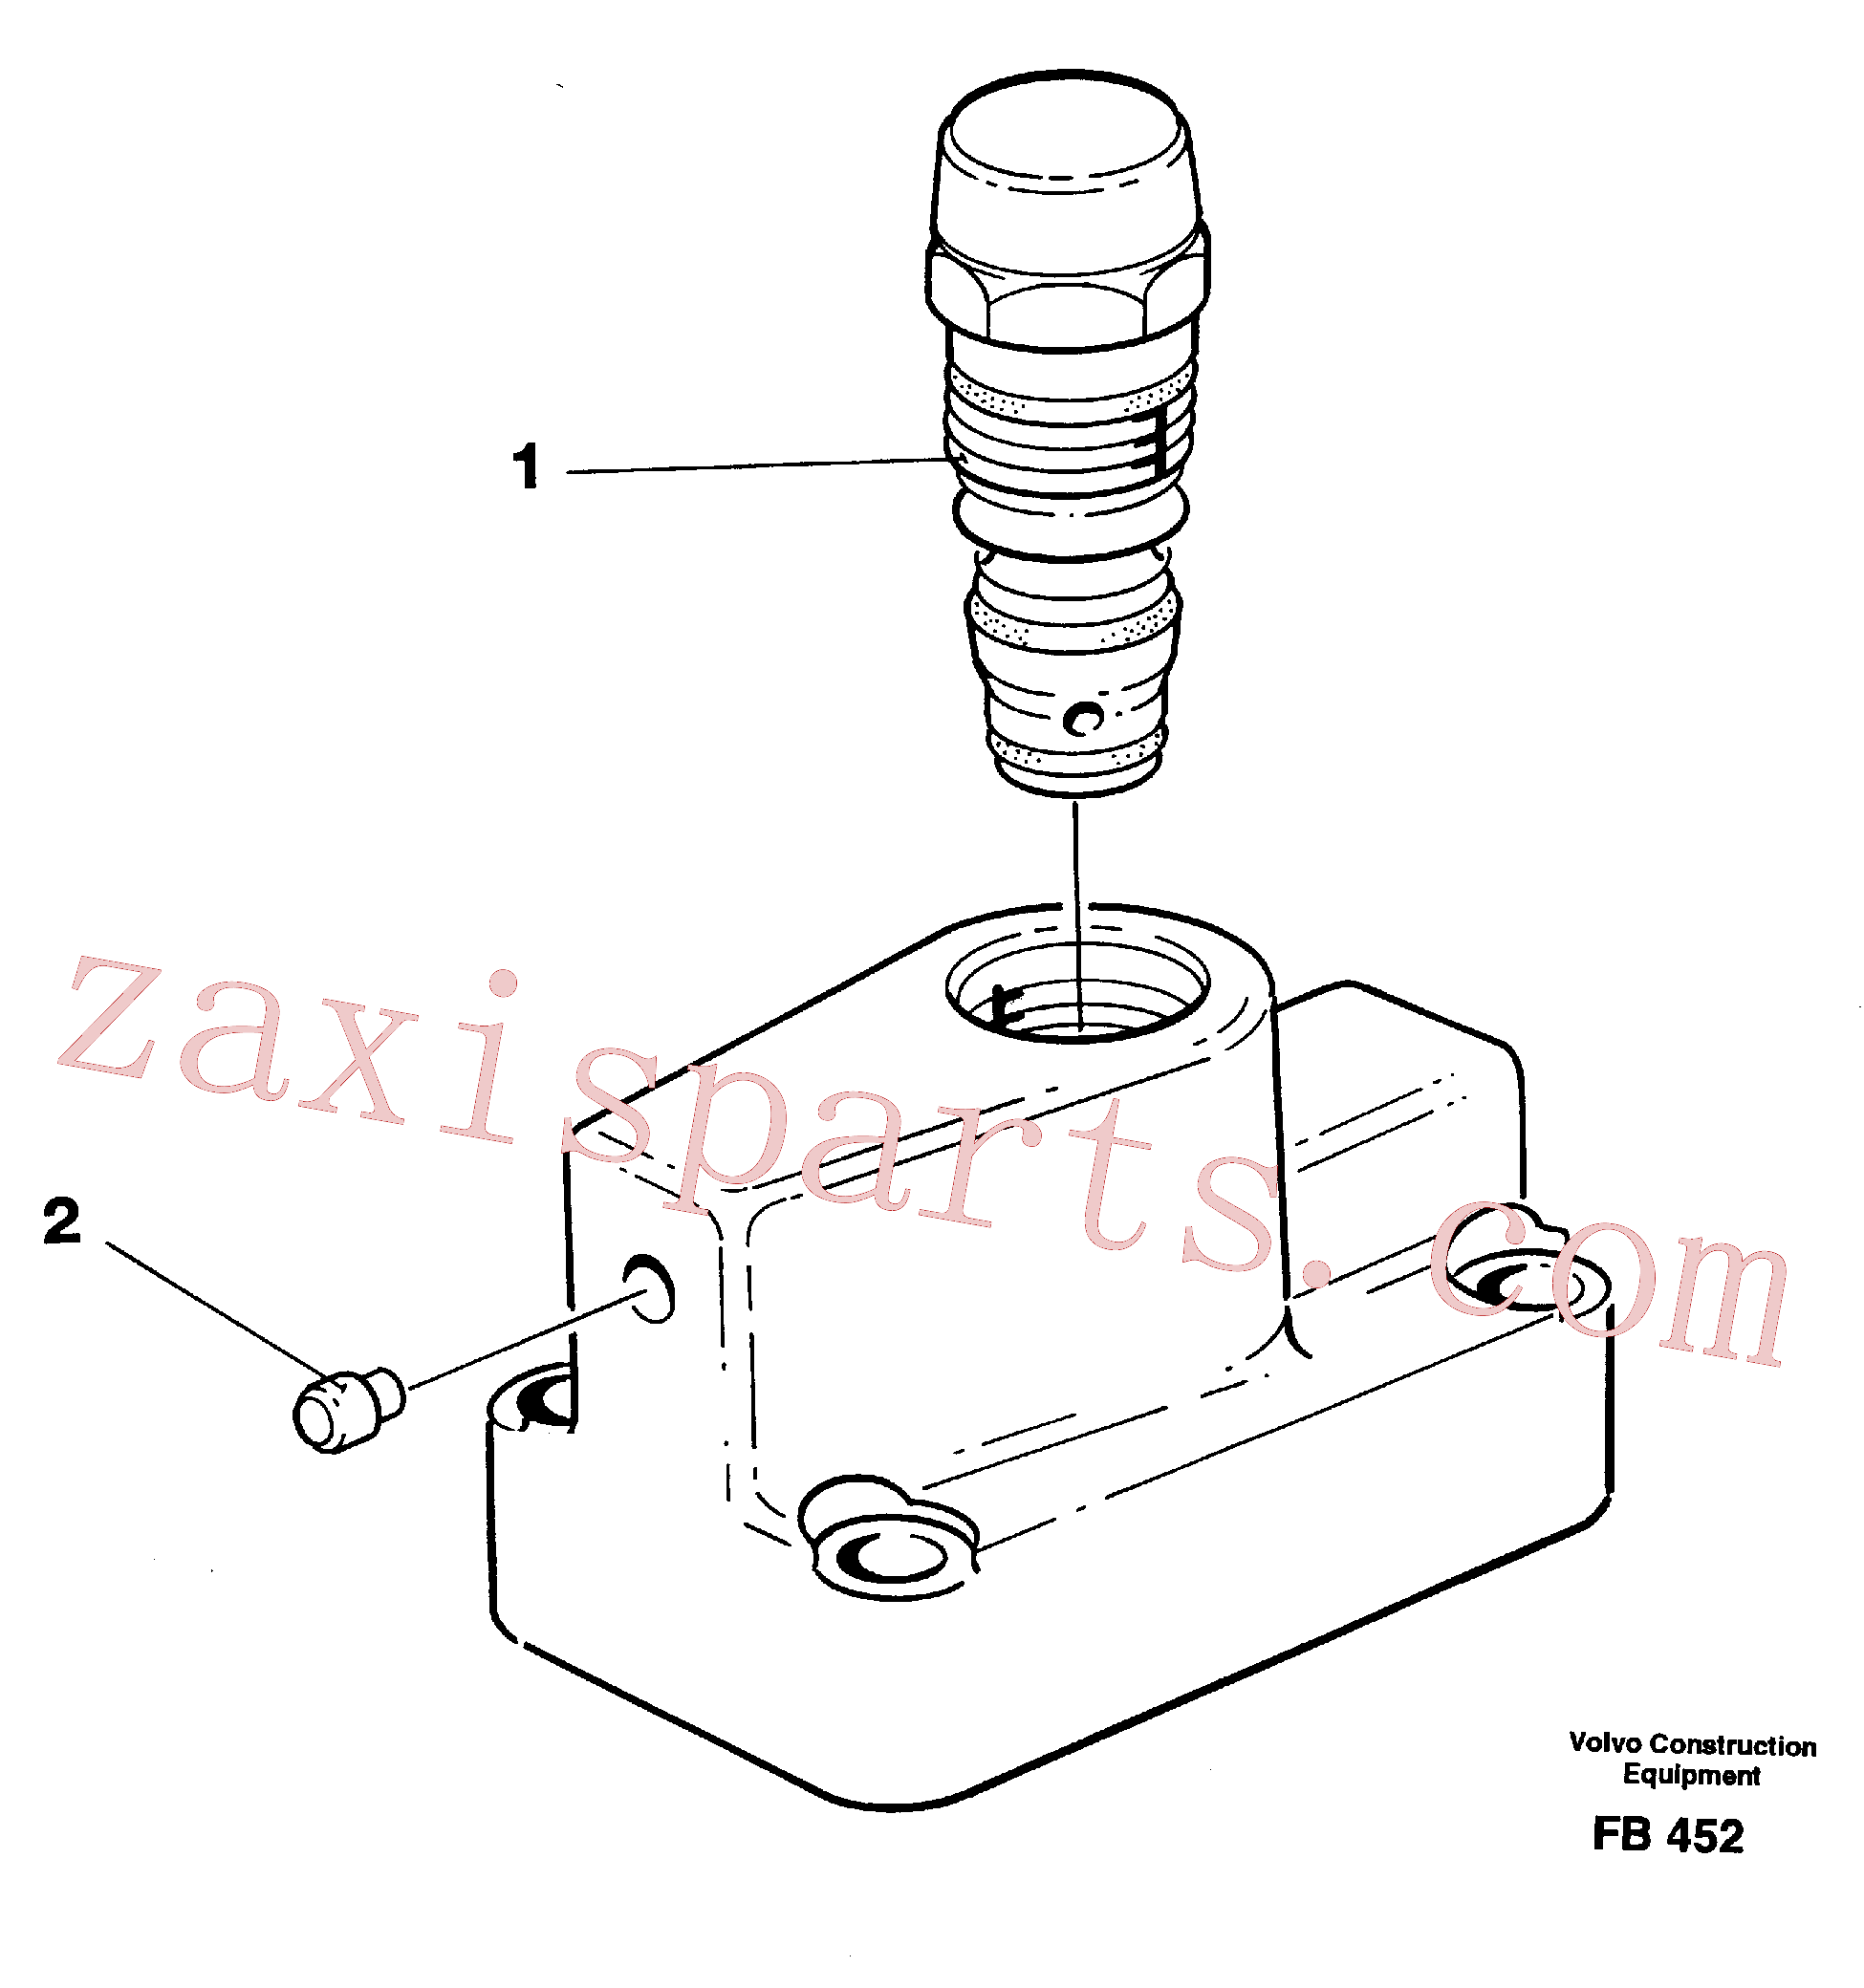 VOE14267238 for Volvo Pressure limiting valve(FB452 assembly)